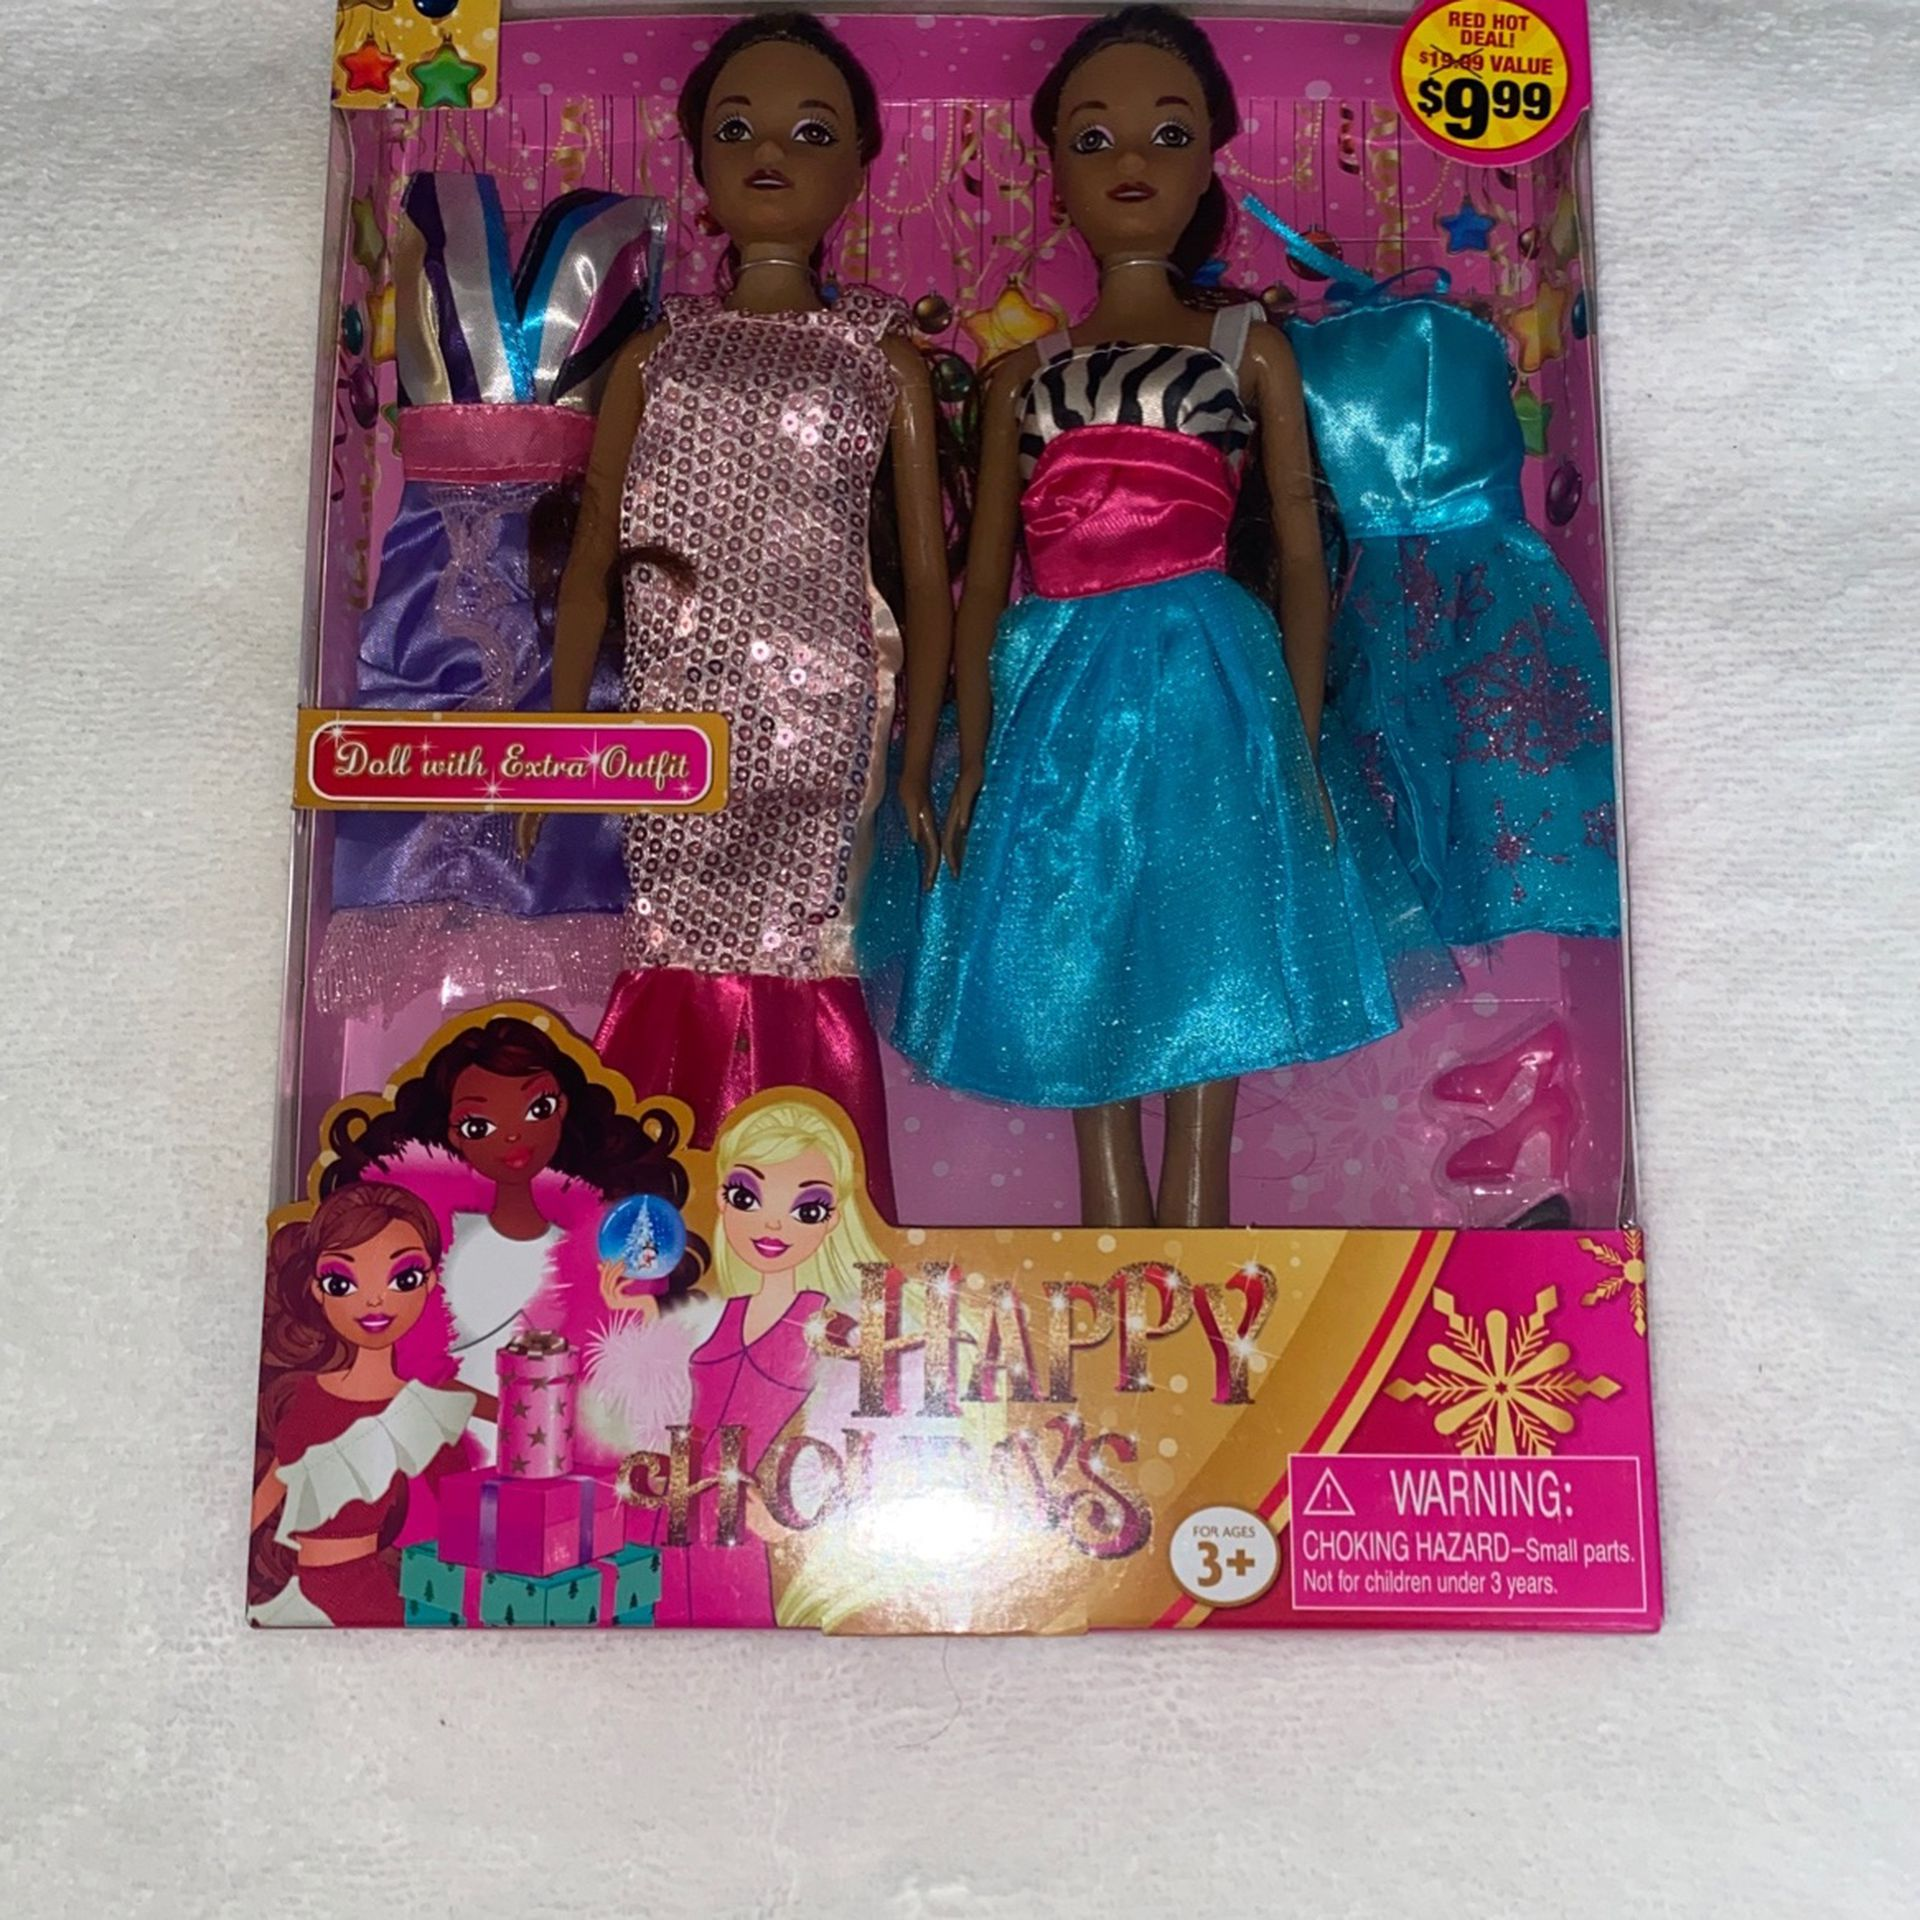 Set Of 2 Dolls With Extra Outfits